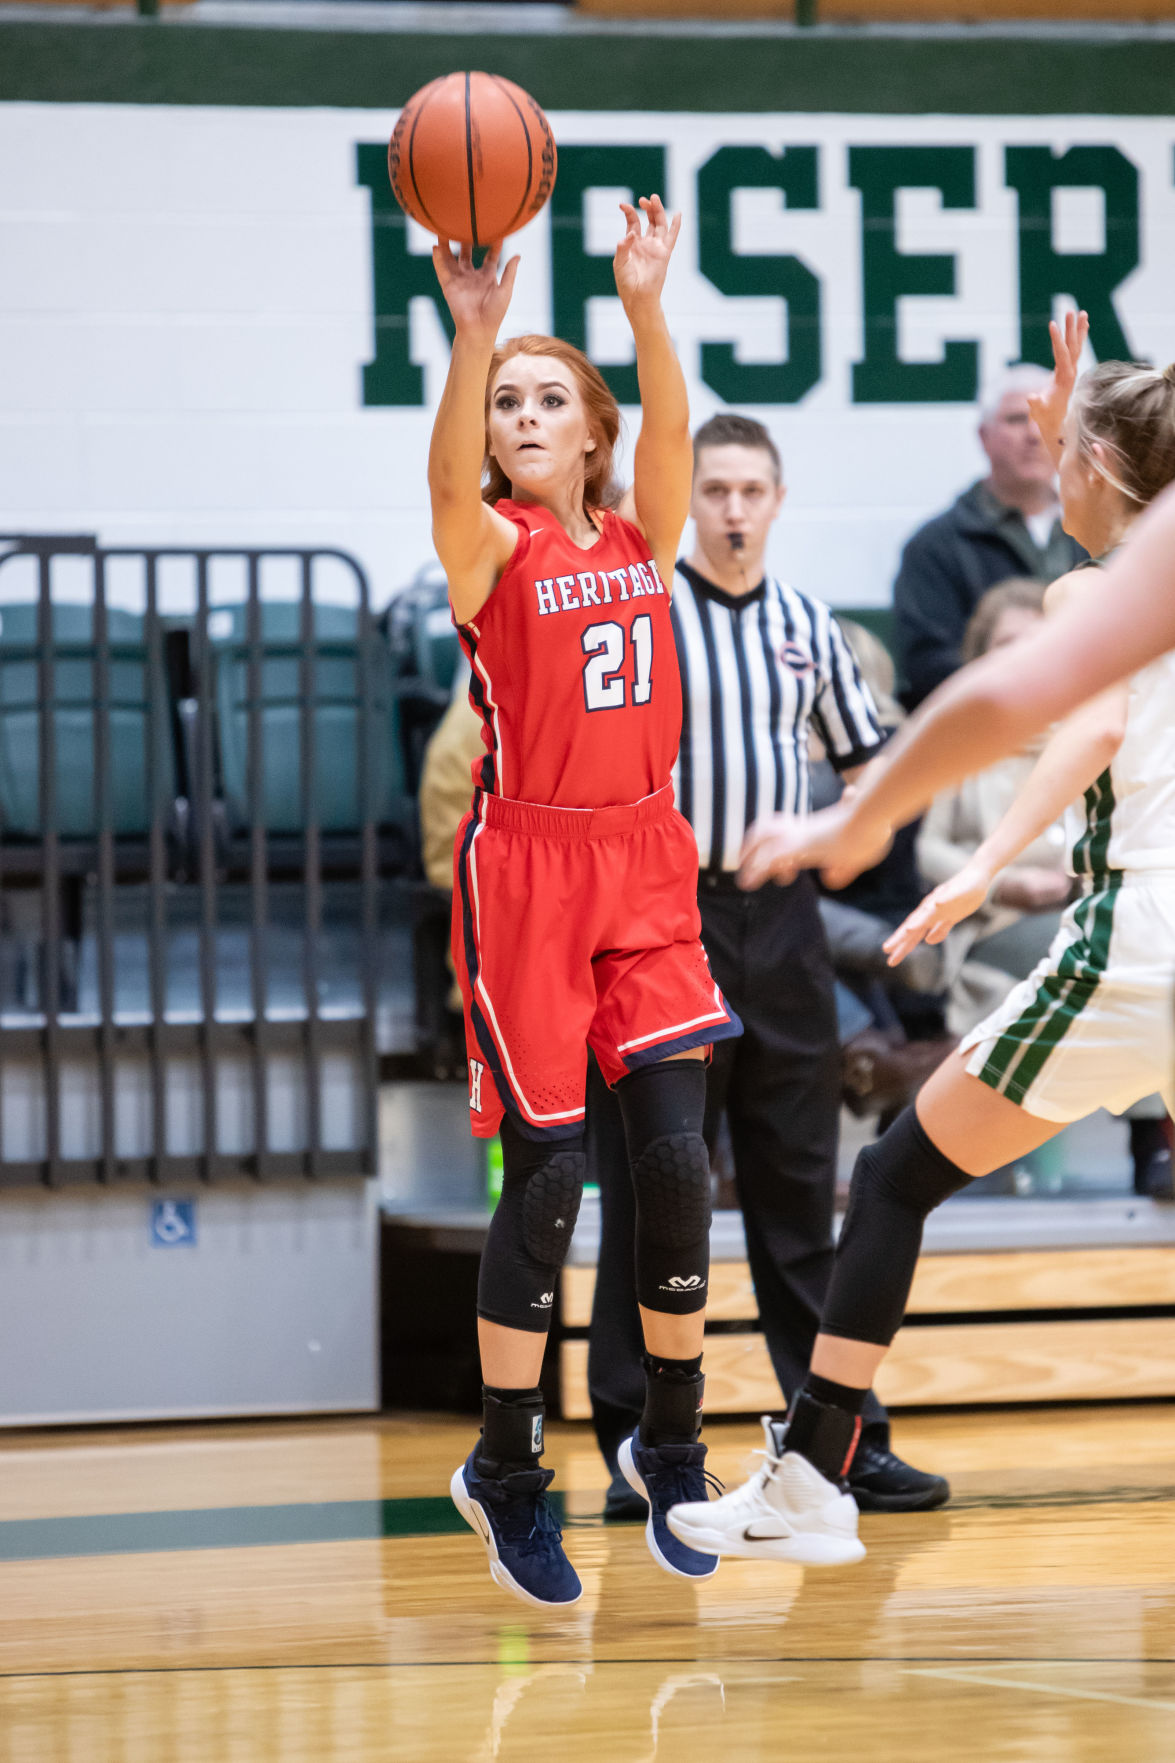 WH Heritage's Kelsey Russell shoots a 3-pointer.JPG